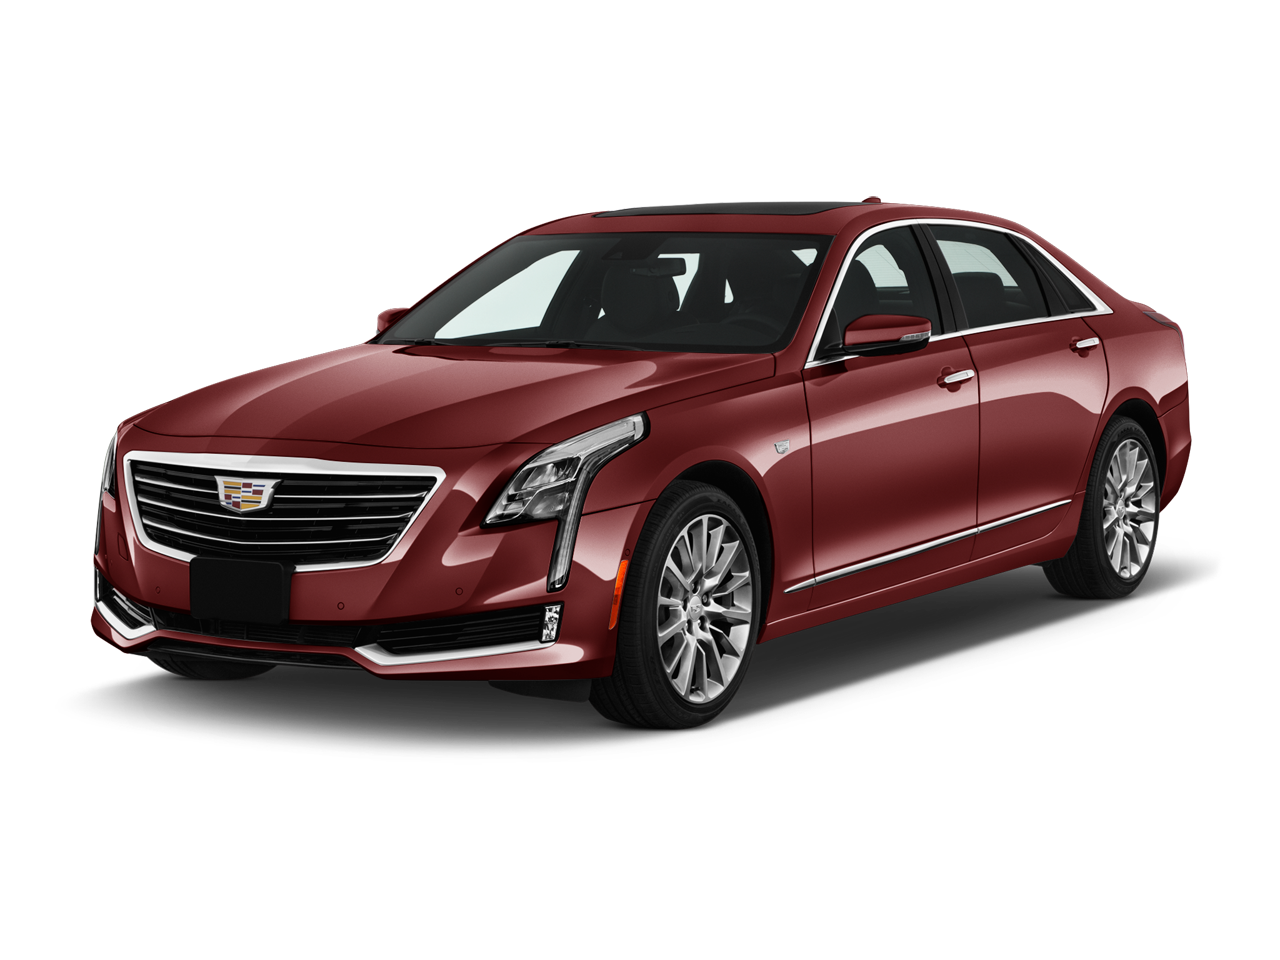 new 2017 cadillac ct6 3 6l luxury awd navigation near highland mi lafontaine cadillac buick gmc. Black Bedroom Furniture Sets. Home Design Ideas